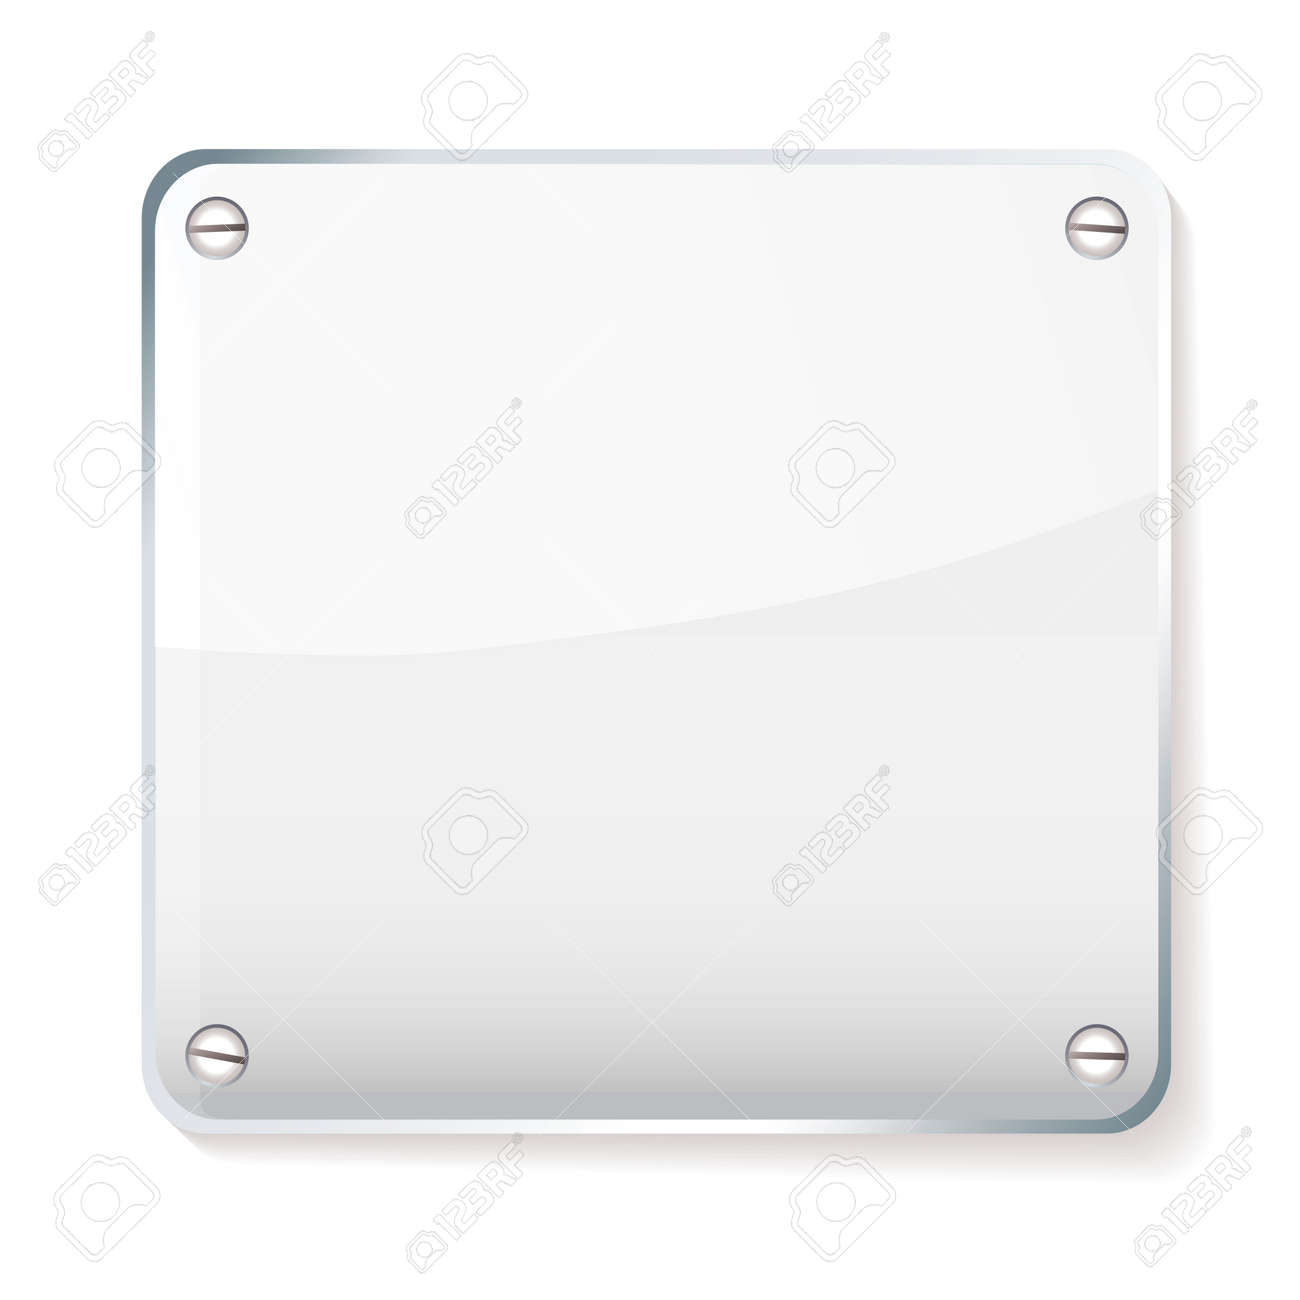 Copy space for your company name on glass plate with shadow - 14872290